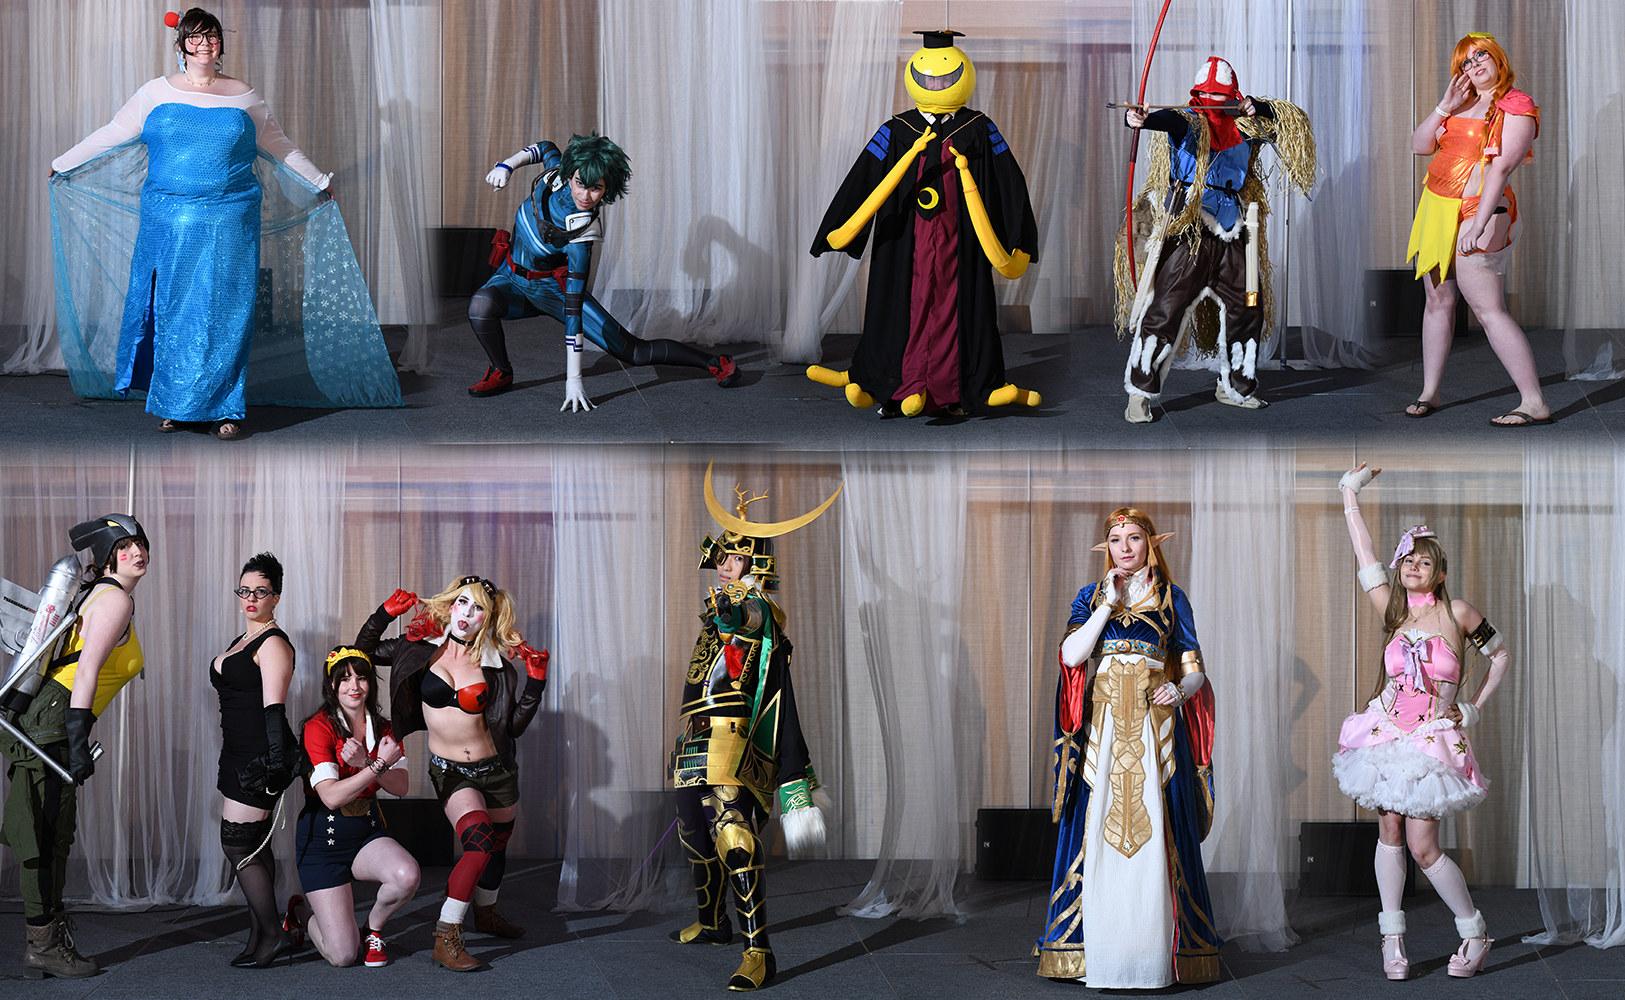 2019CosplayShowcase.png